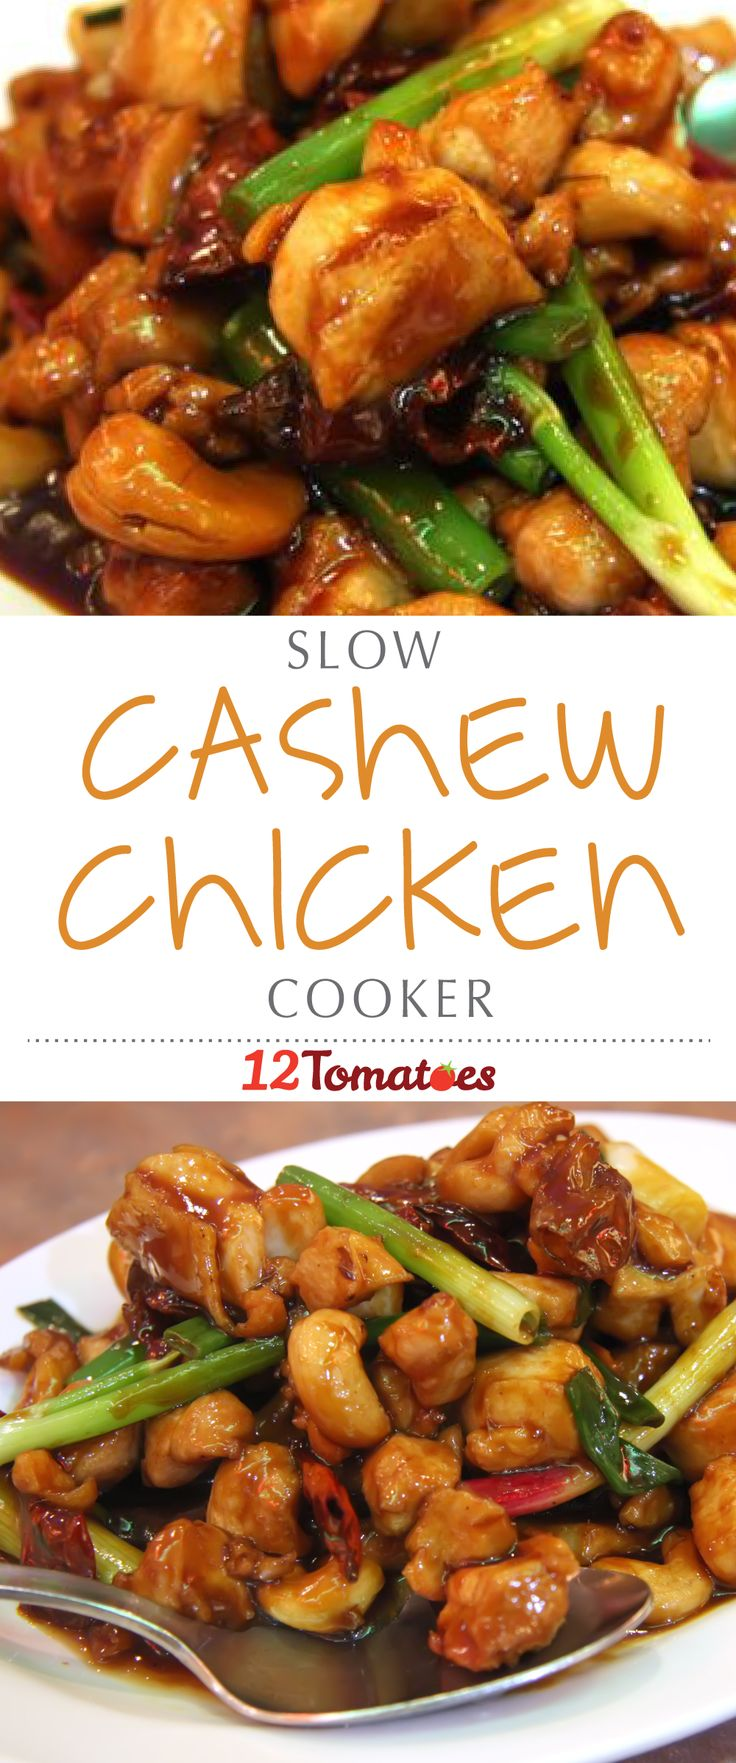 Thinking takeout was the only way we could get our tasty favorite, we were floored when we heard we could make something even better in the slow cooker and completely blown away when we tried it and found out that it tasted amazing!